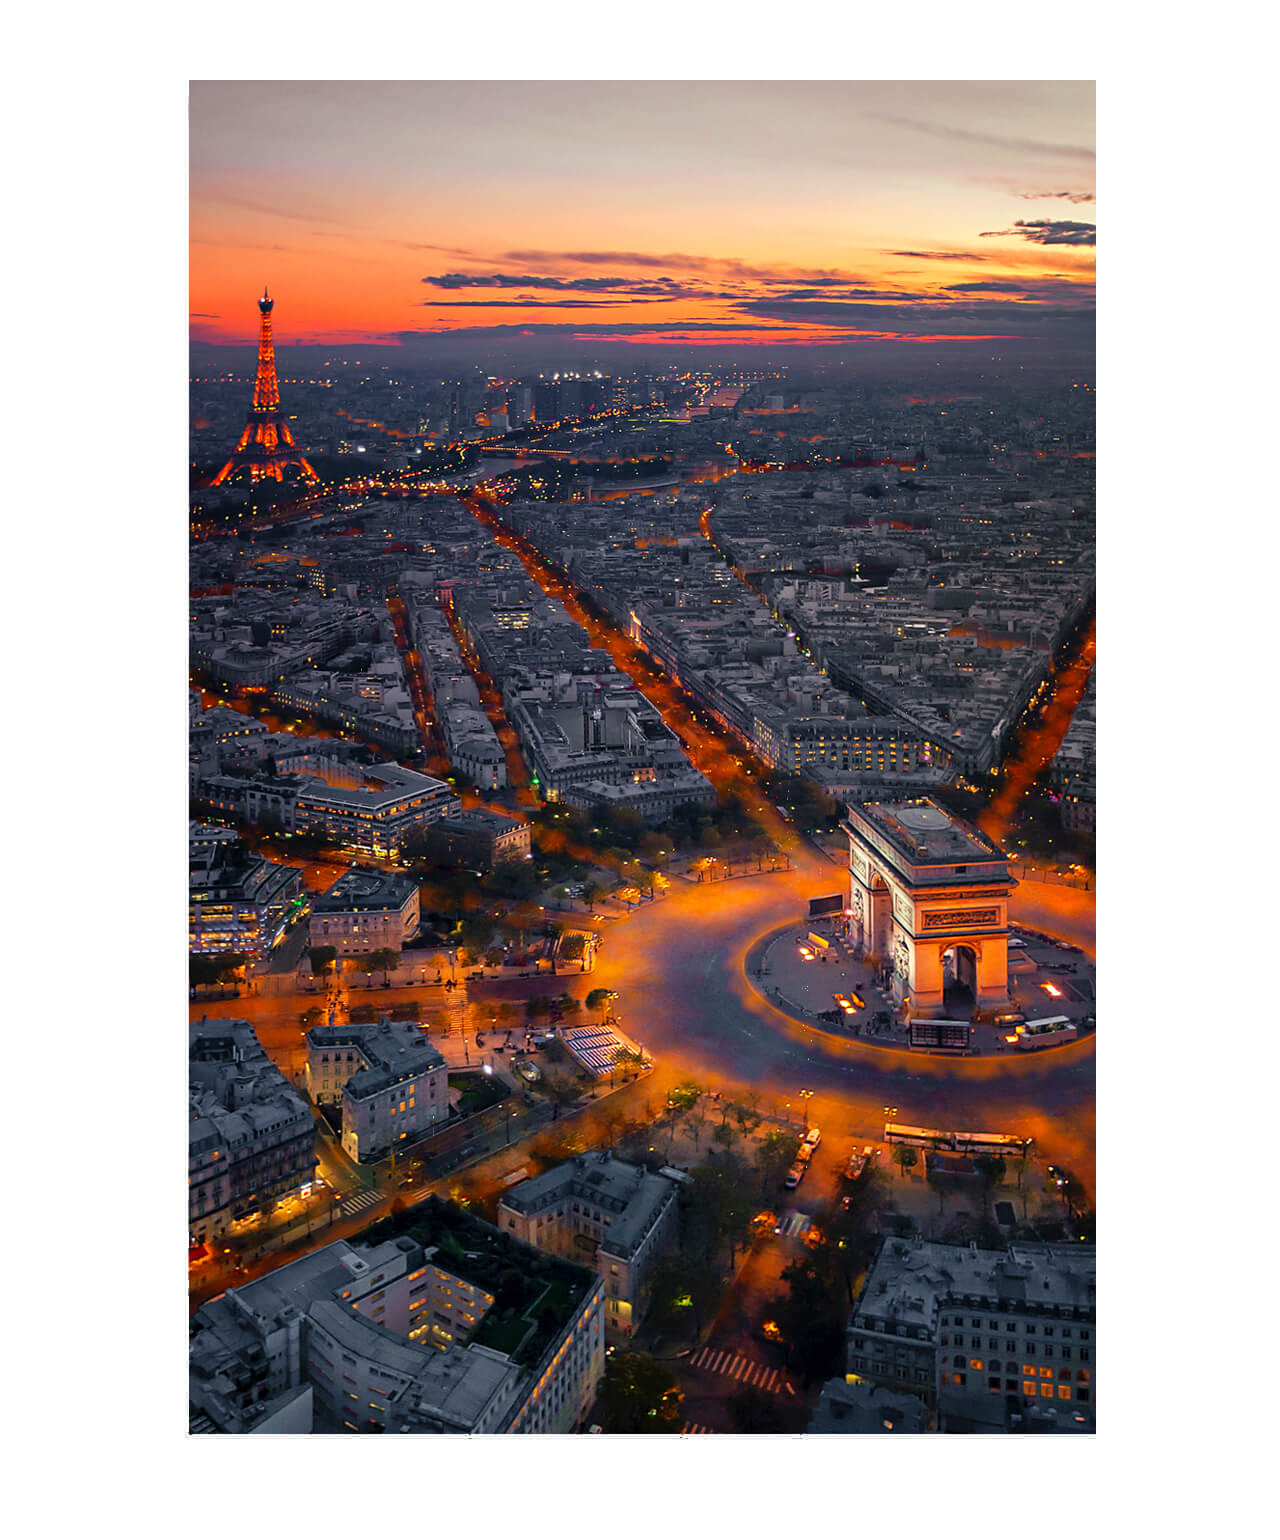 Kay Michaels: Paris